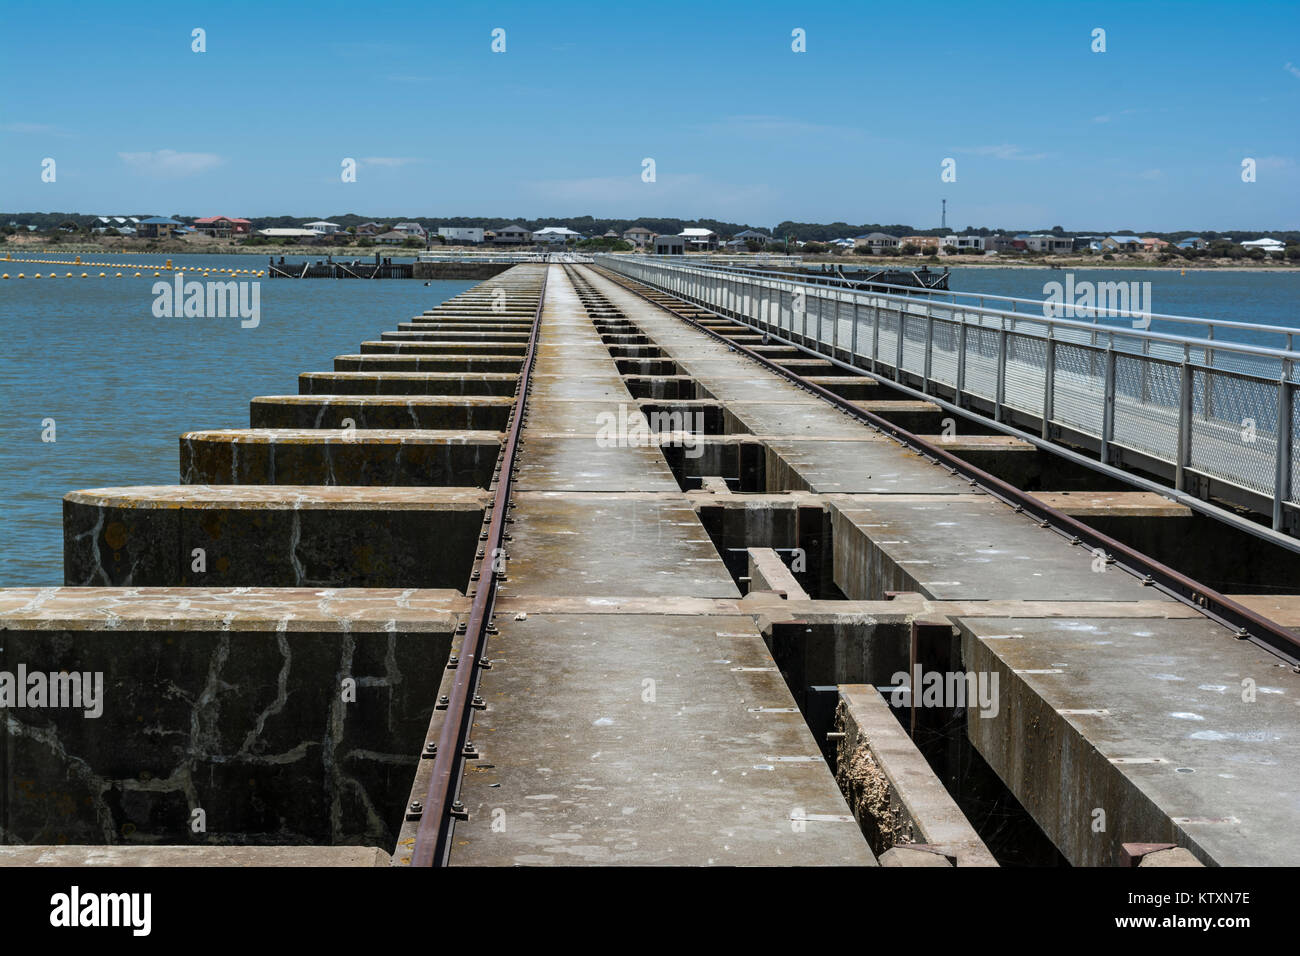 Goolwa Barrage Lock, South Australia. In landscape orientation looking out over the length of the lock from the - Stock Image